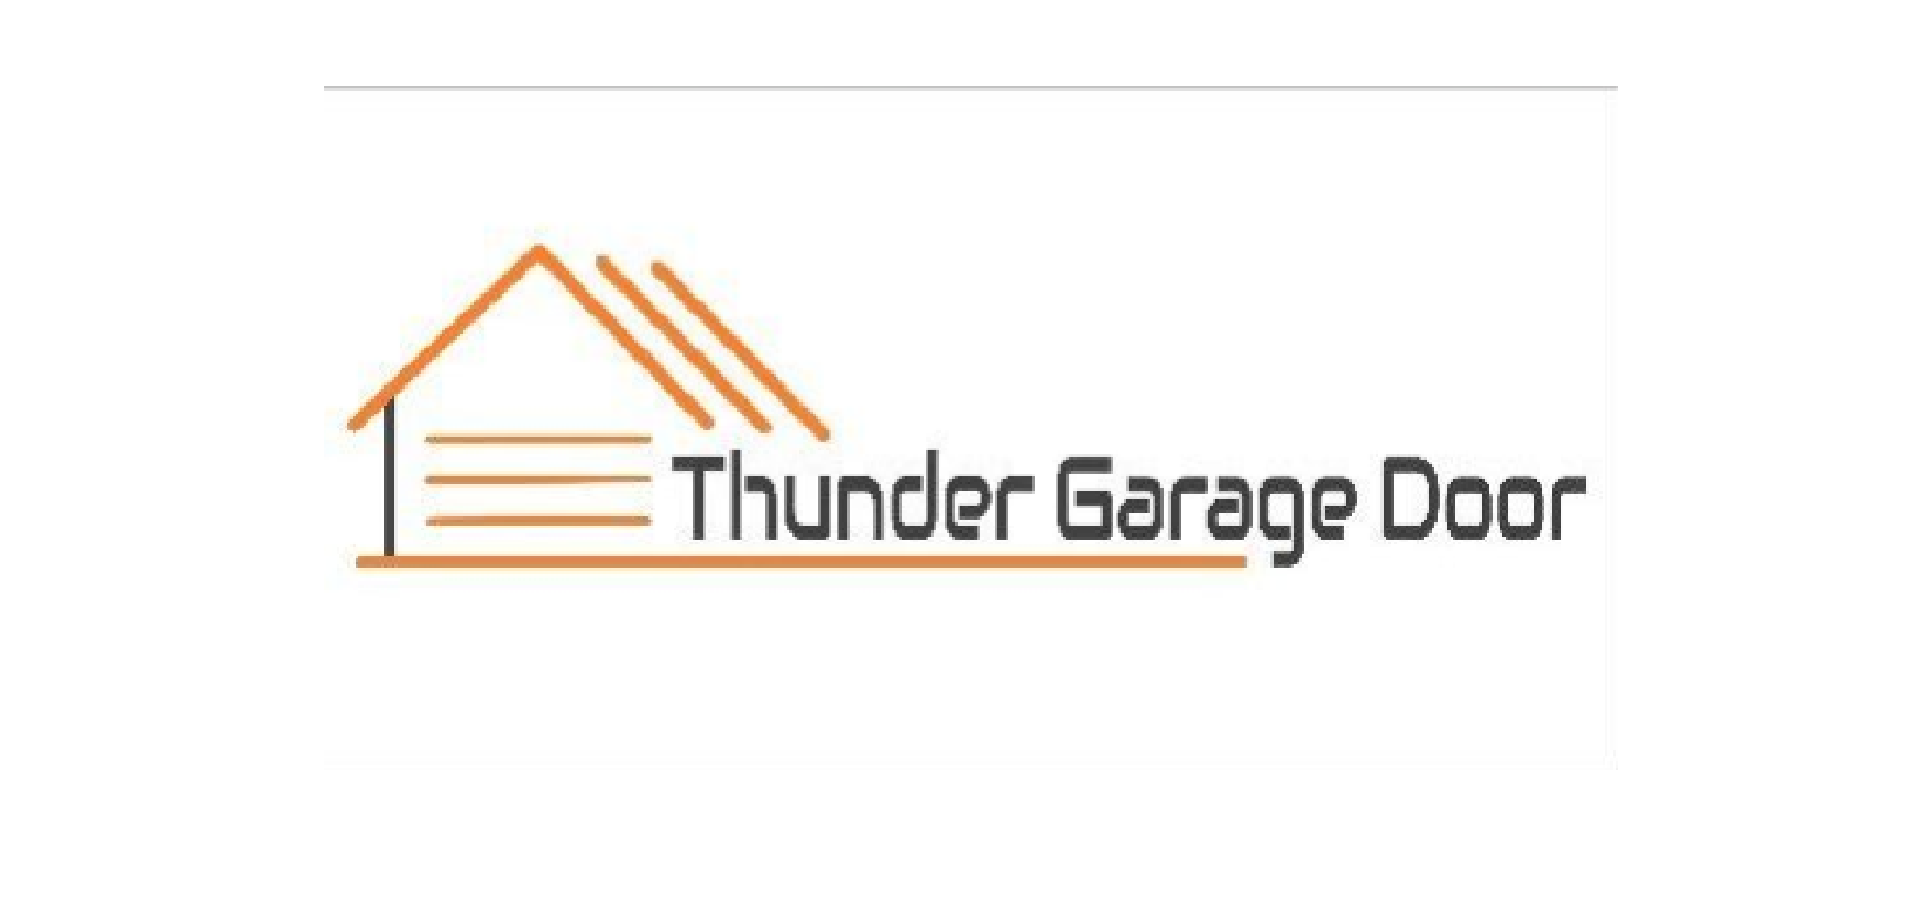 Thunder Garage Door